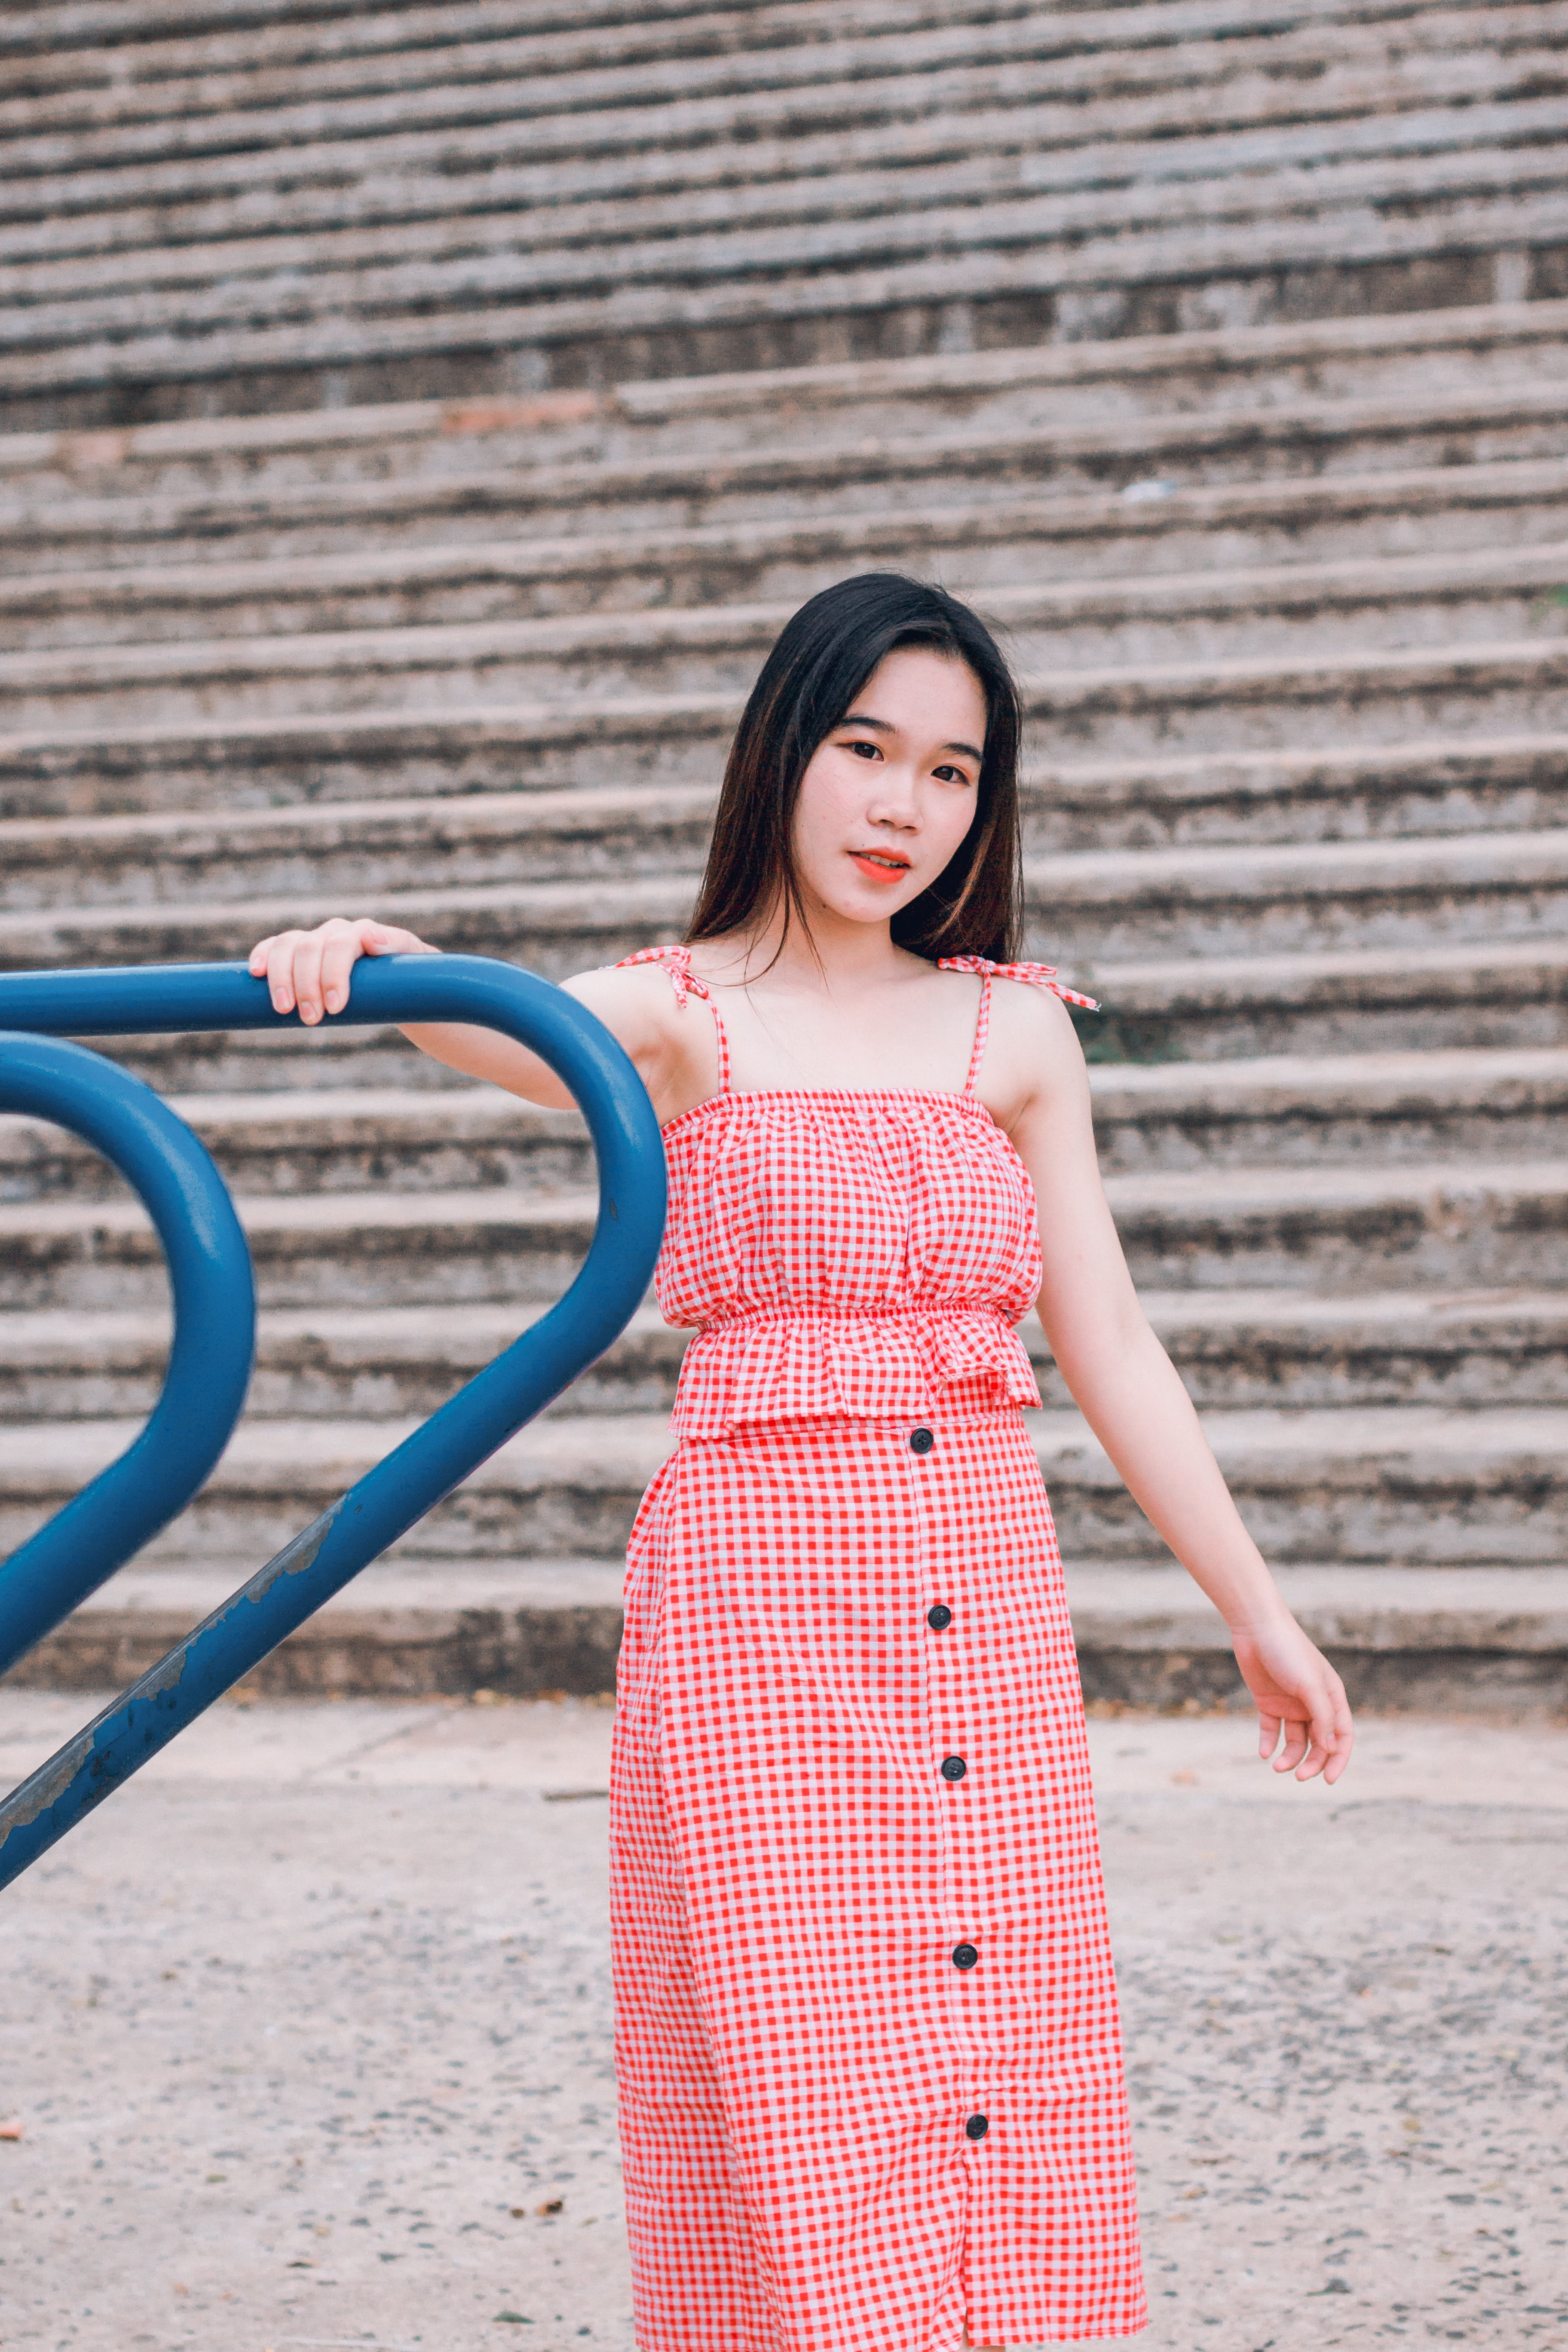 Woman in Red and White Spaghetti Strap Dress